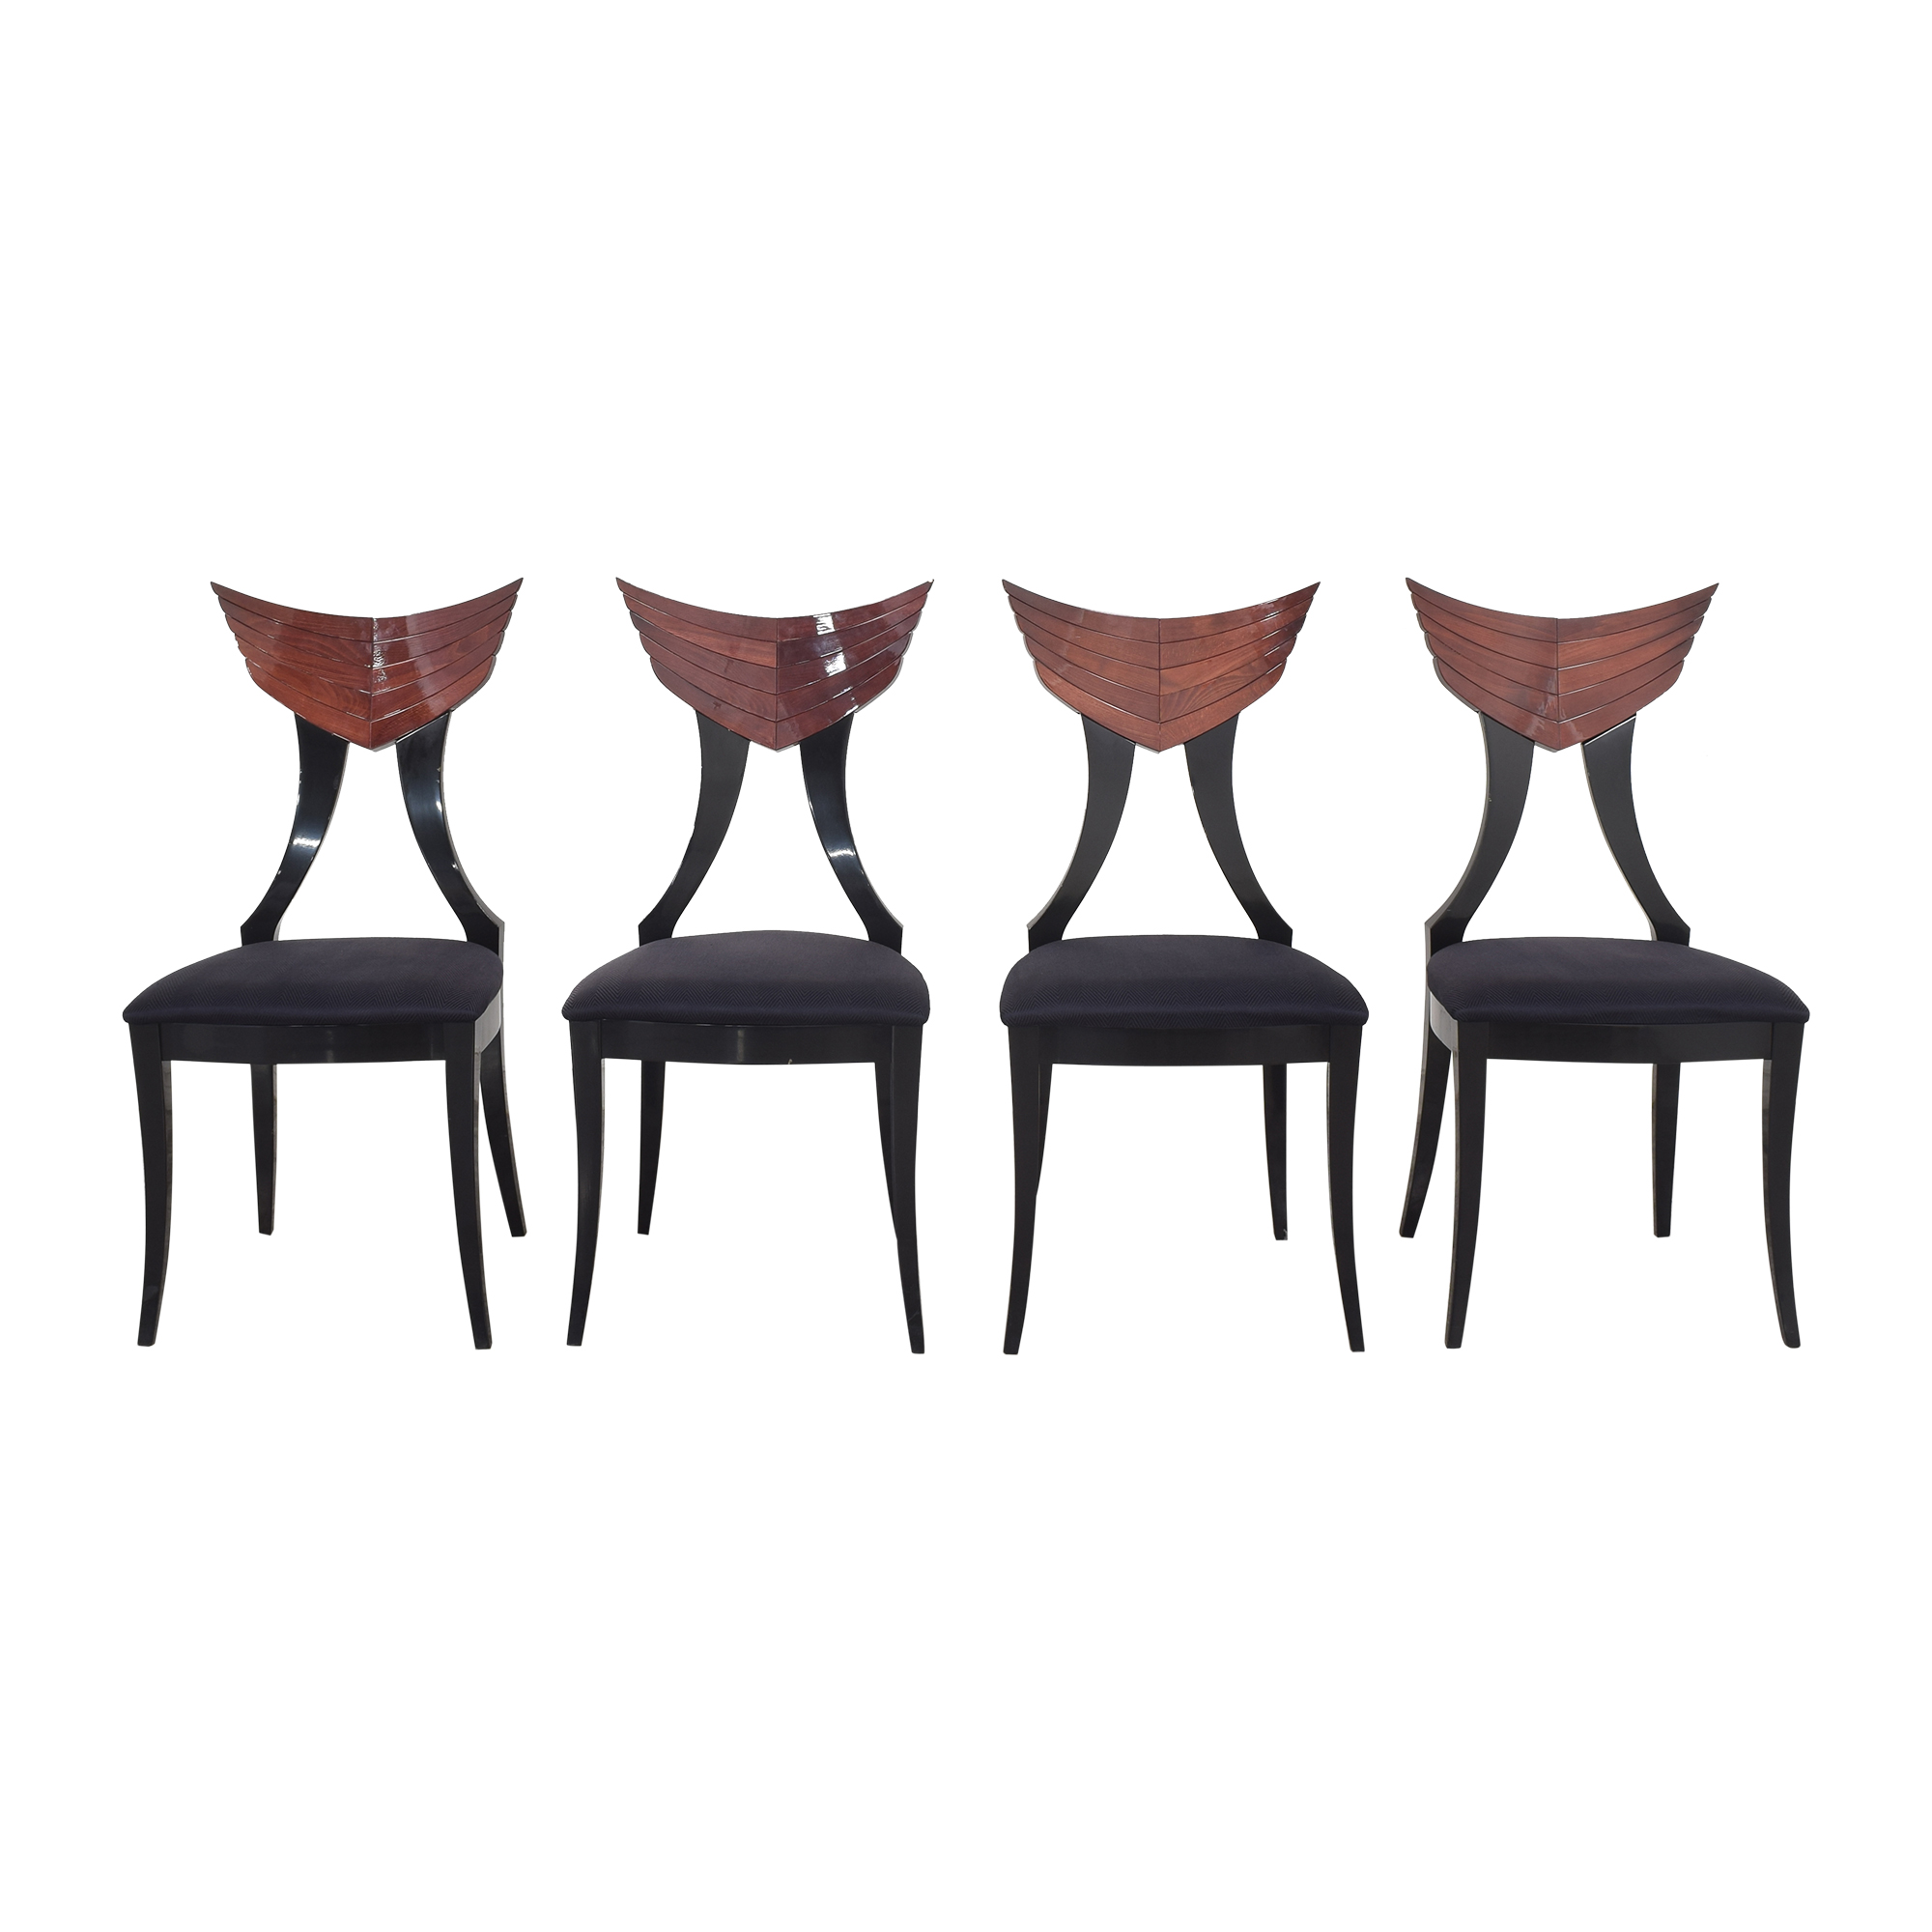 Ello Furniture Pietro Constantini for Ello Klismos Dining Chairs Dining Chairs